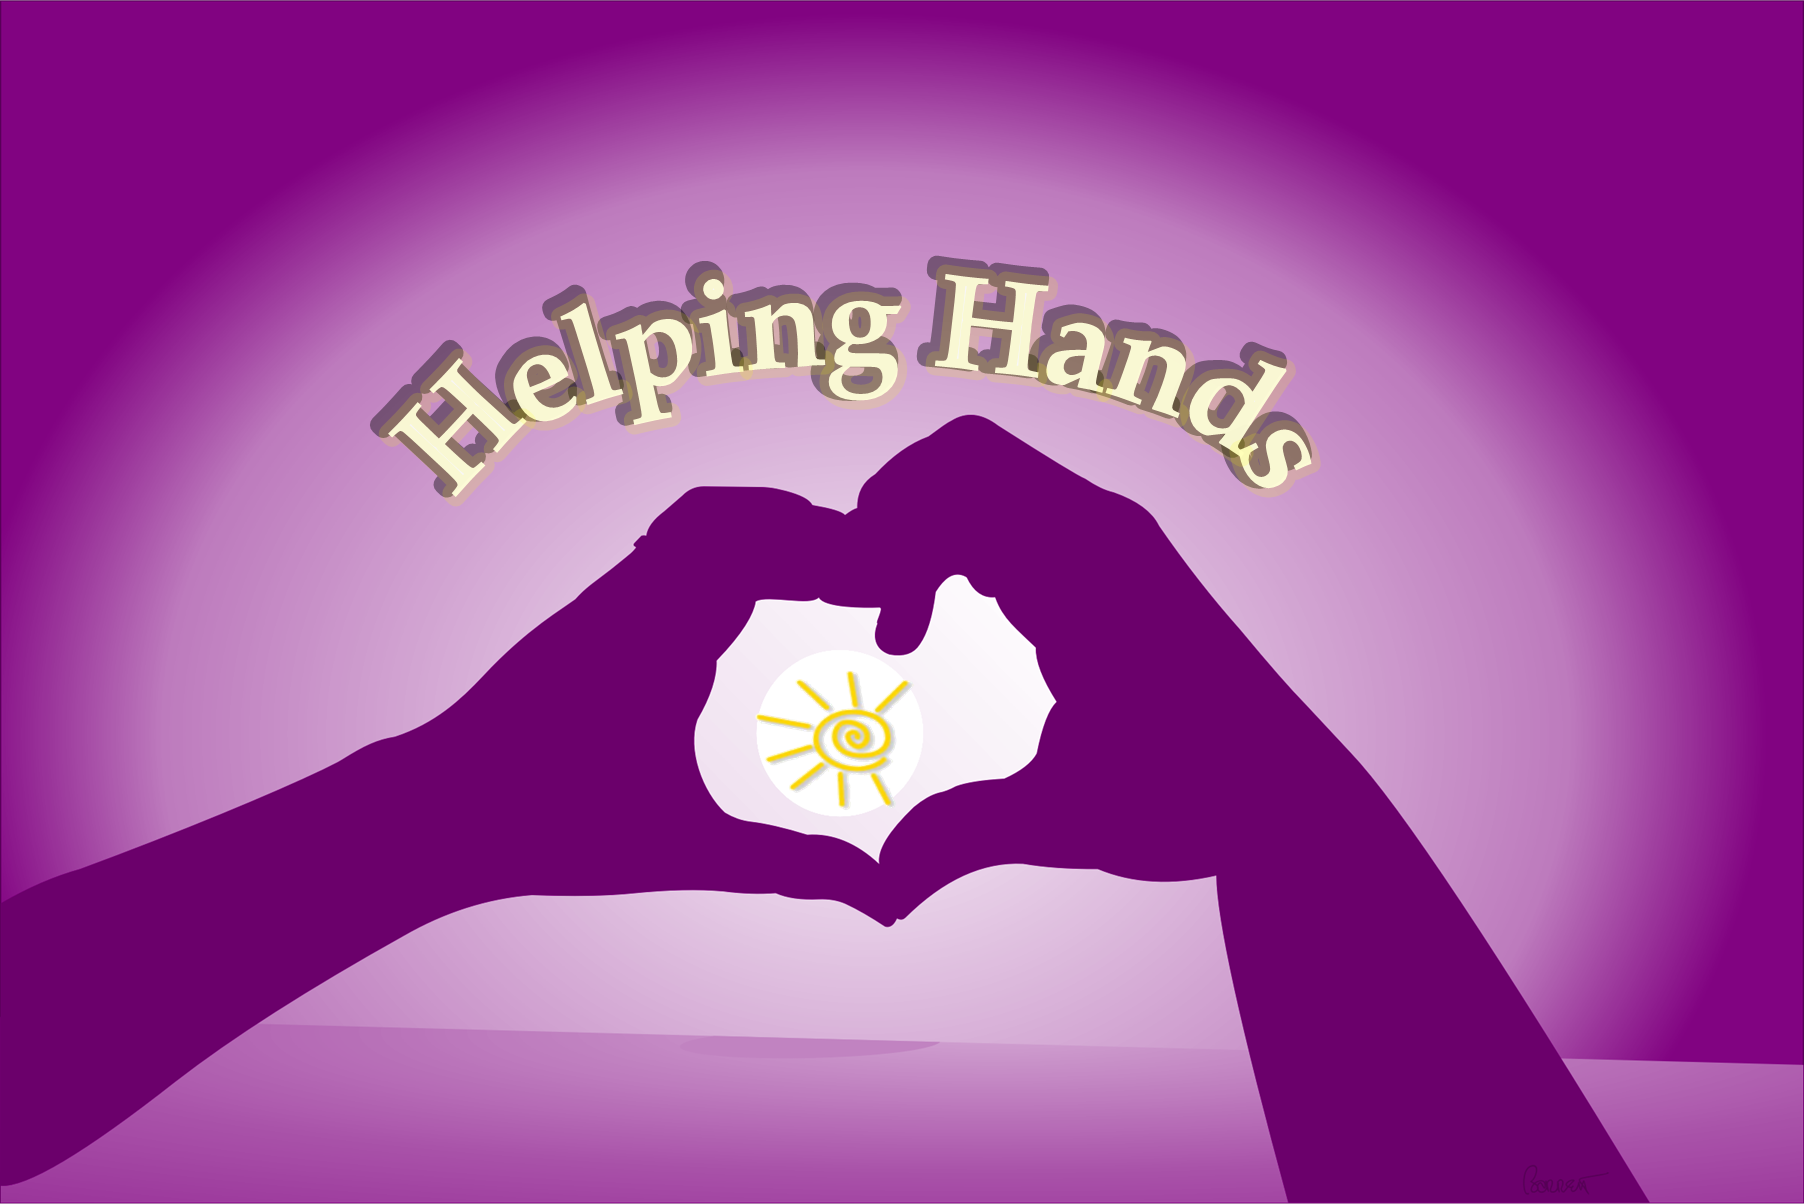 Donate - Help us support our community!We accept online donations by clicking on the